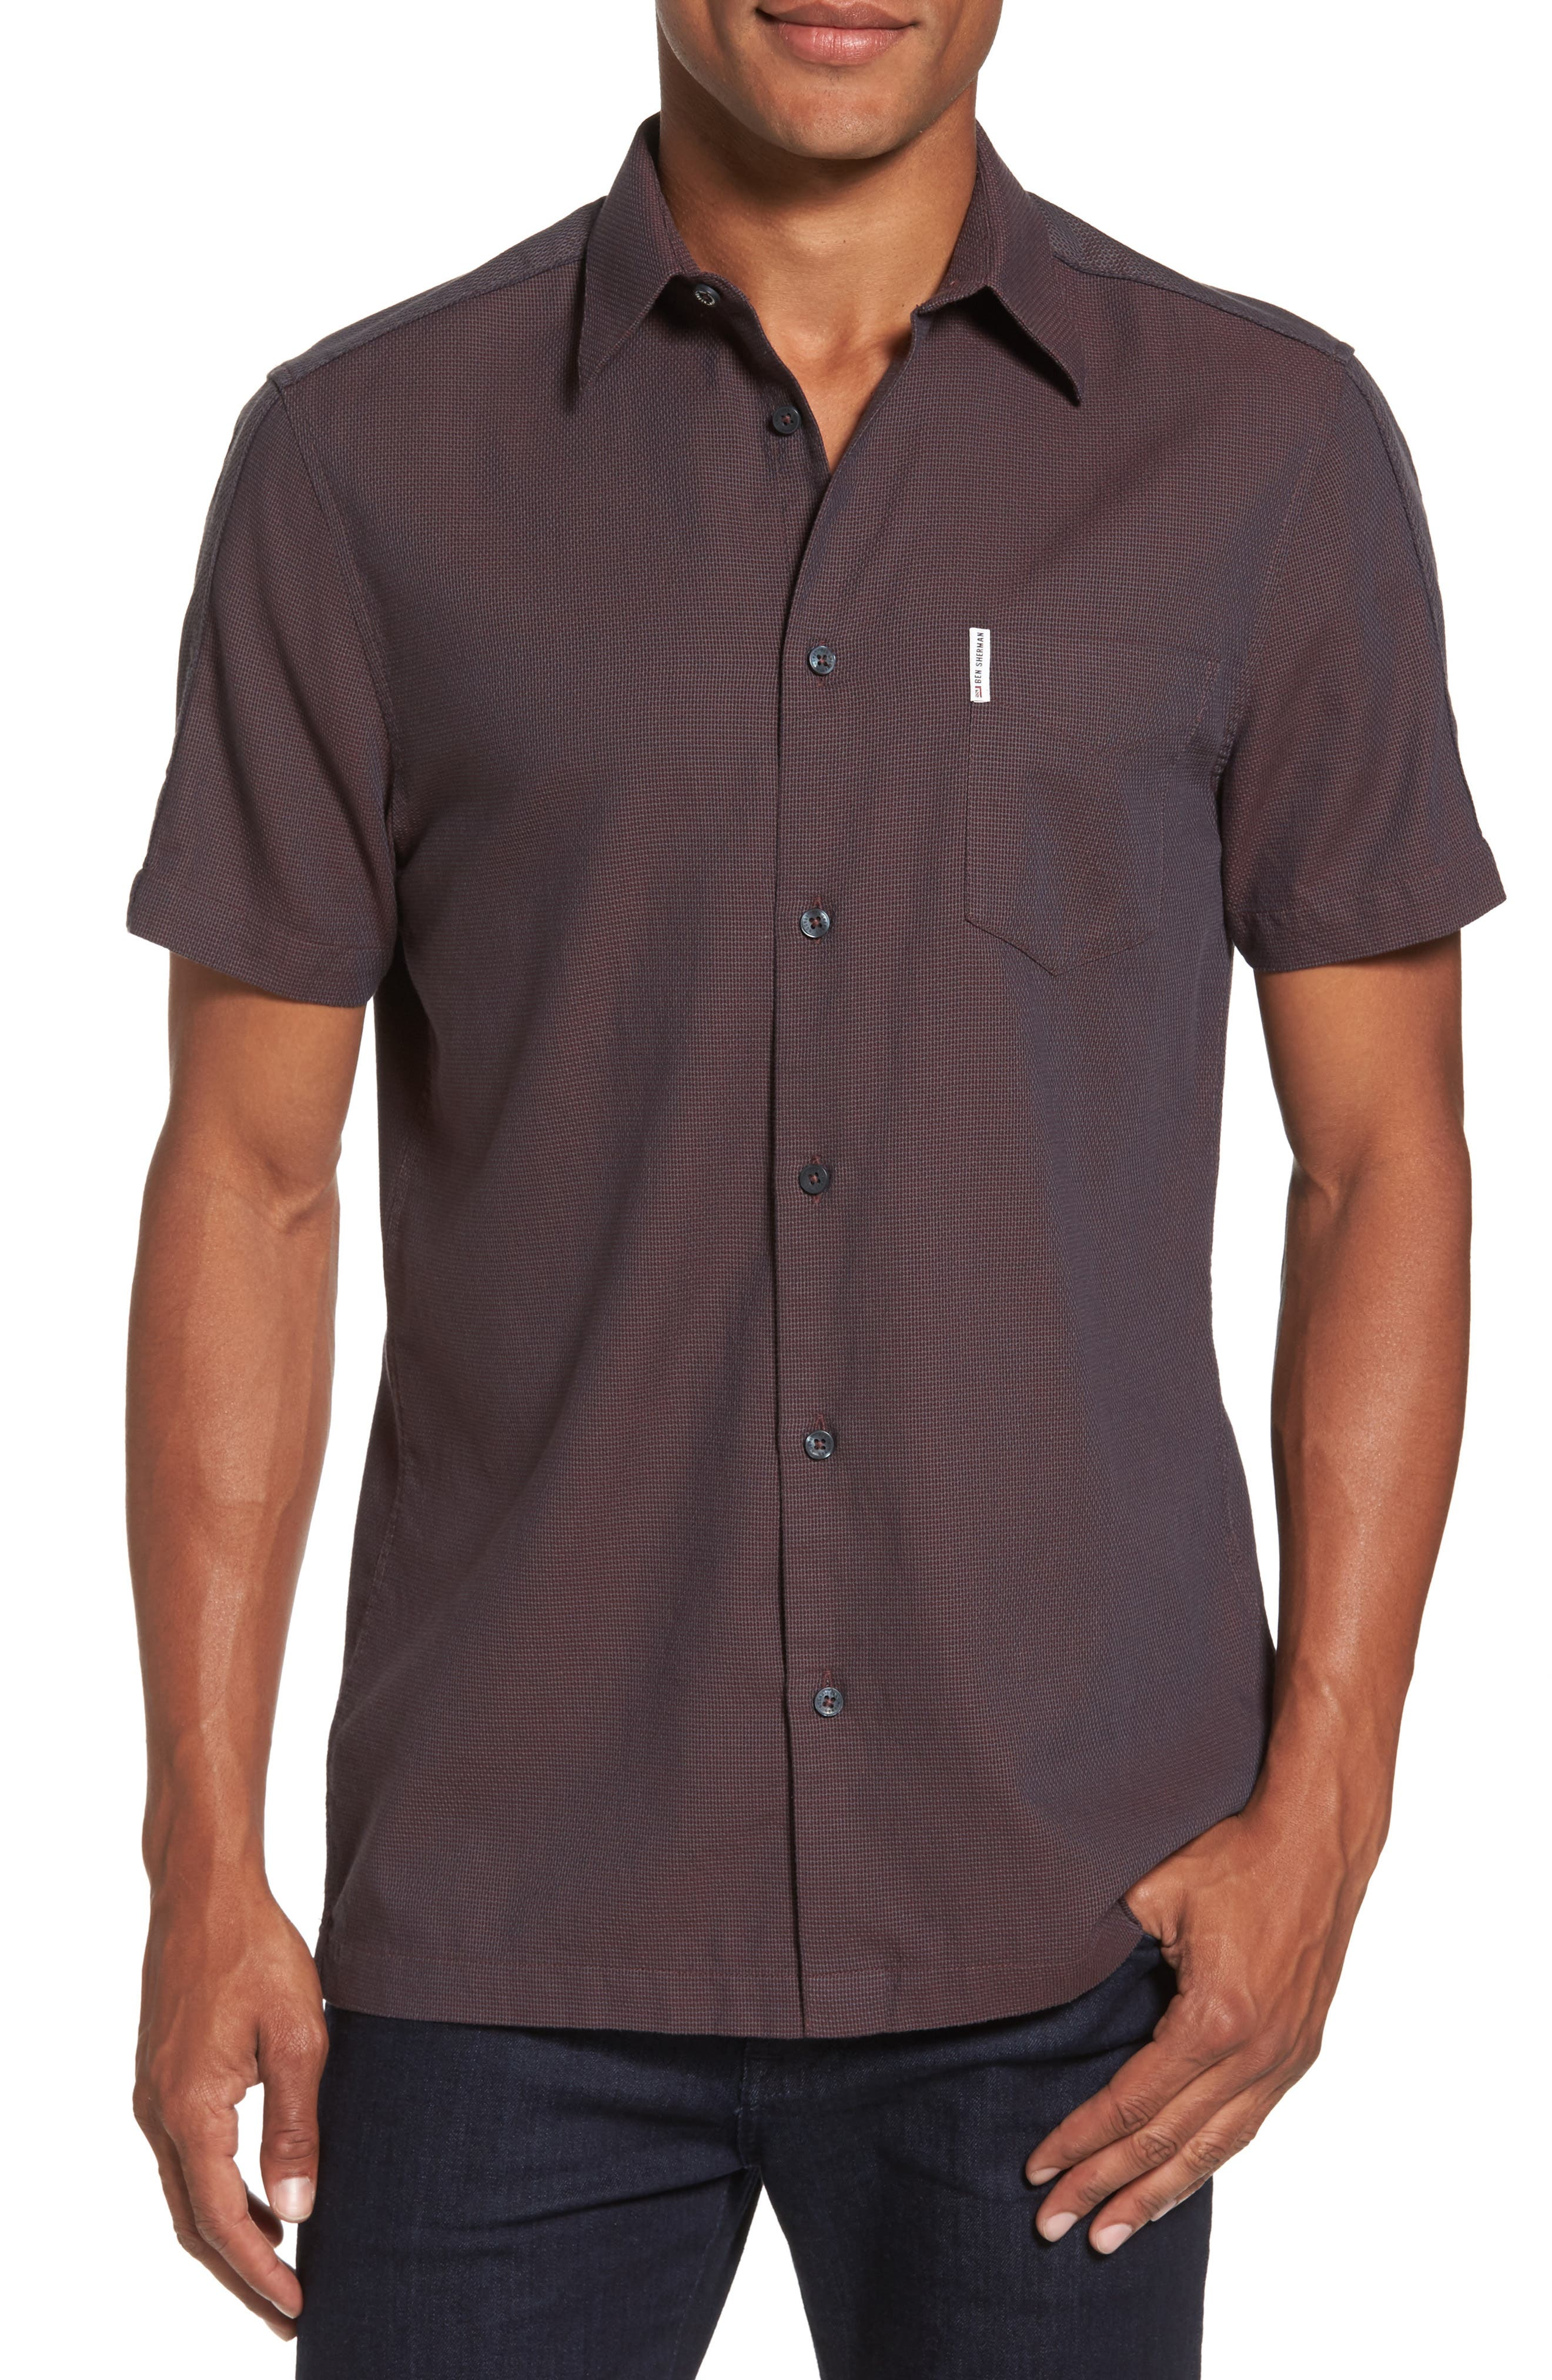 Alternate Image 1 Selected - Ben Sherman Dobby Short Sleeve Shirt